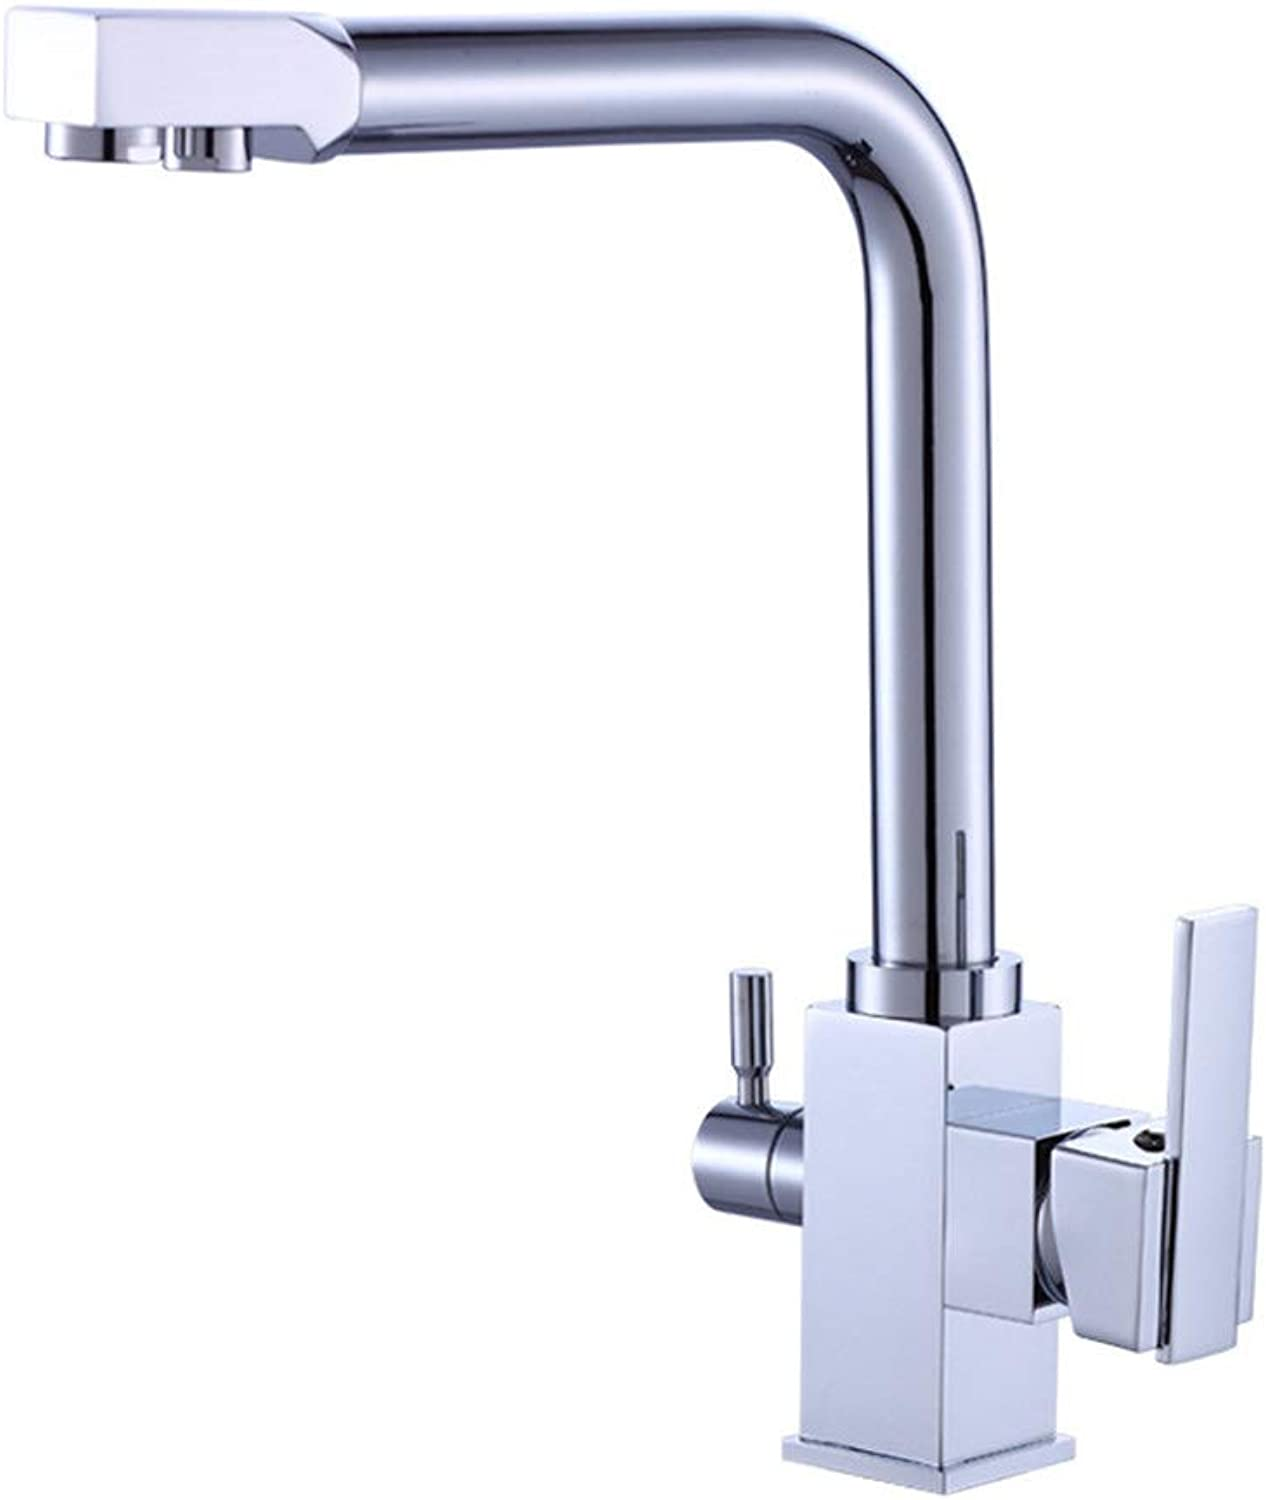 3 Way Kitchen Sink Tap Drinking Water Filter Tap Polished Chrome Finished Lead Free Solid Brass Construction Swivel Spout Dual Levers Faucet